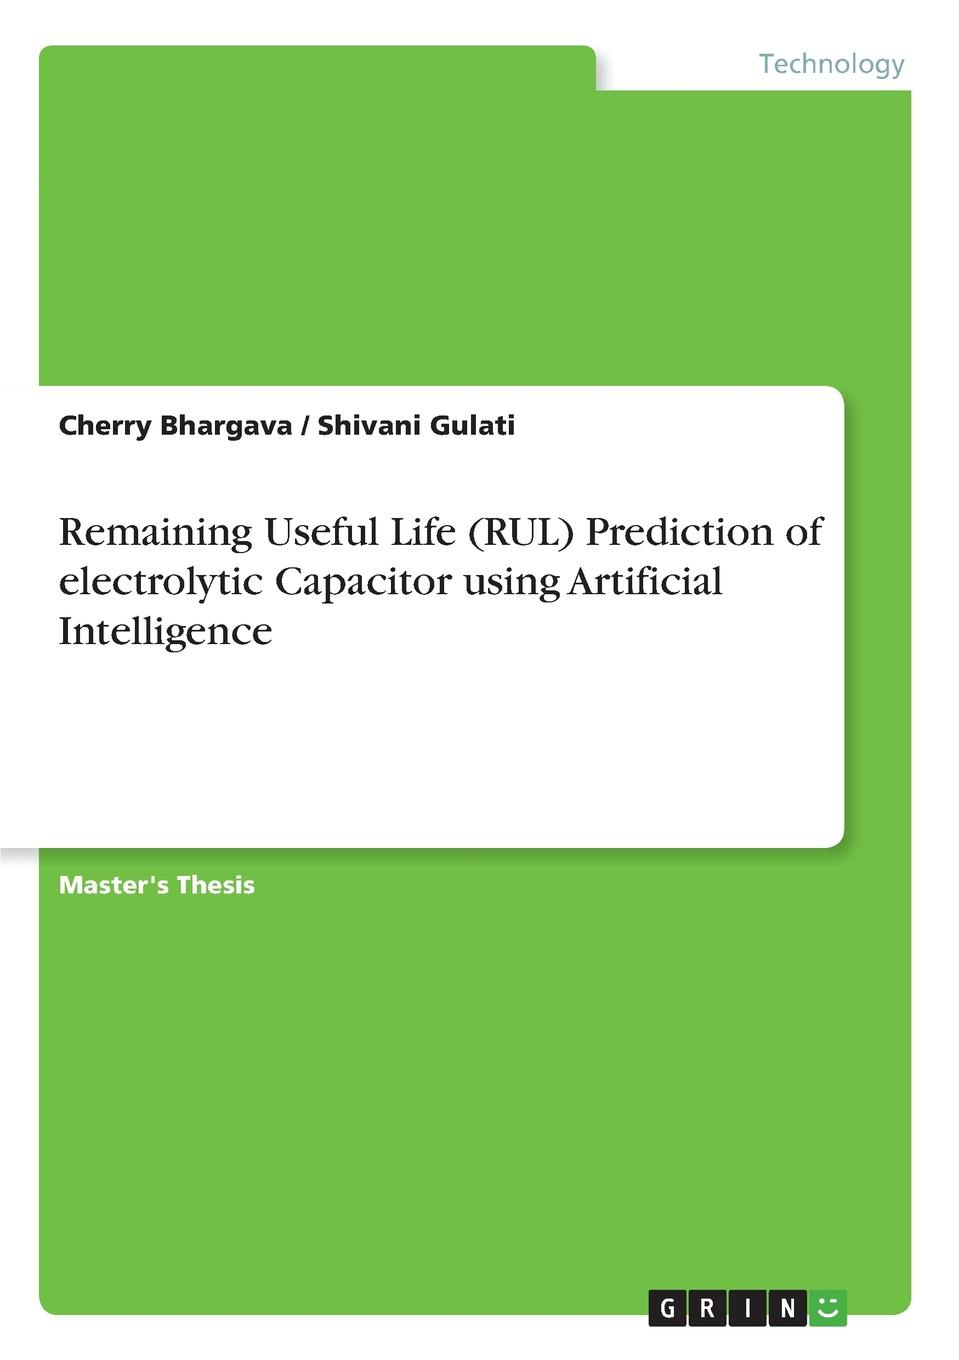 Cherry Bhargava, Shivani Gulati Remaining Useful Life (RUL) Prediction of electrolytic Capacitor using Artificial Intelligence the pomodoro technique the life changing time management system